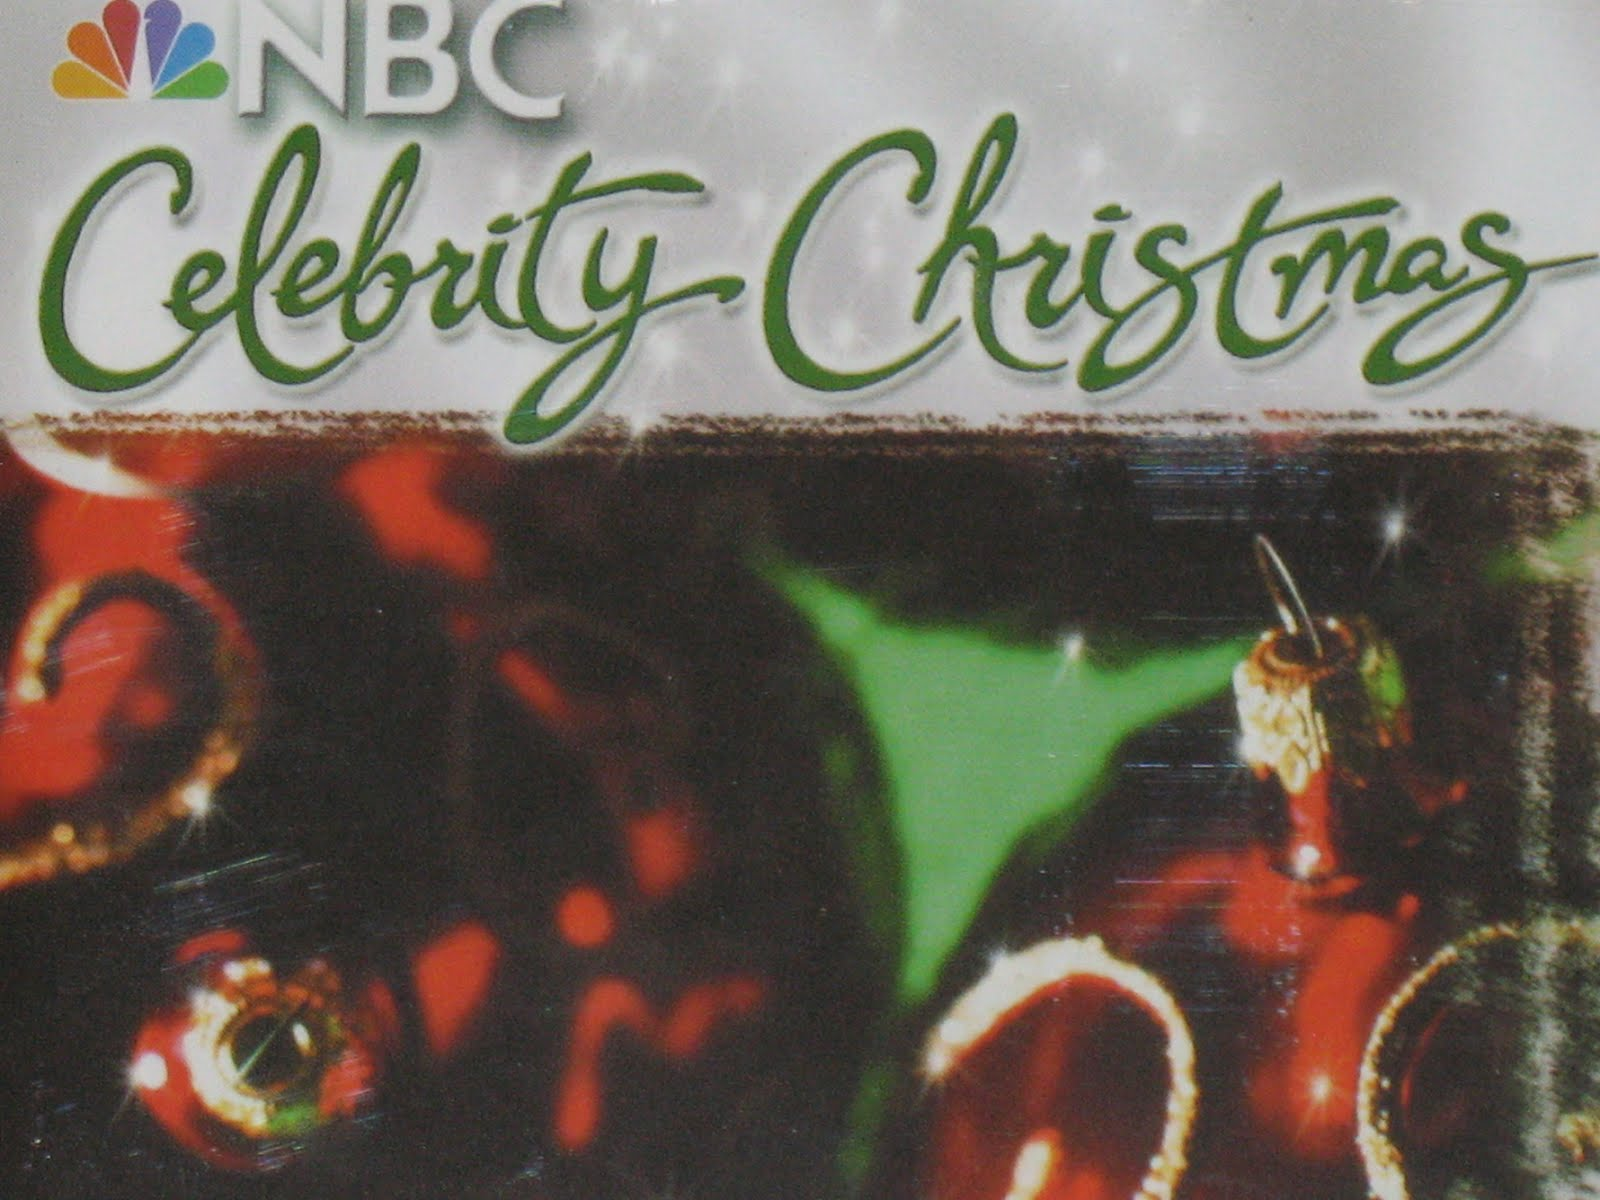 NBC Celebrity Christmas - Various Artists | Songs, Reviews ...